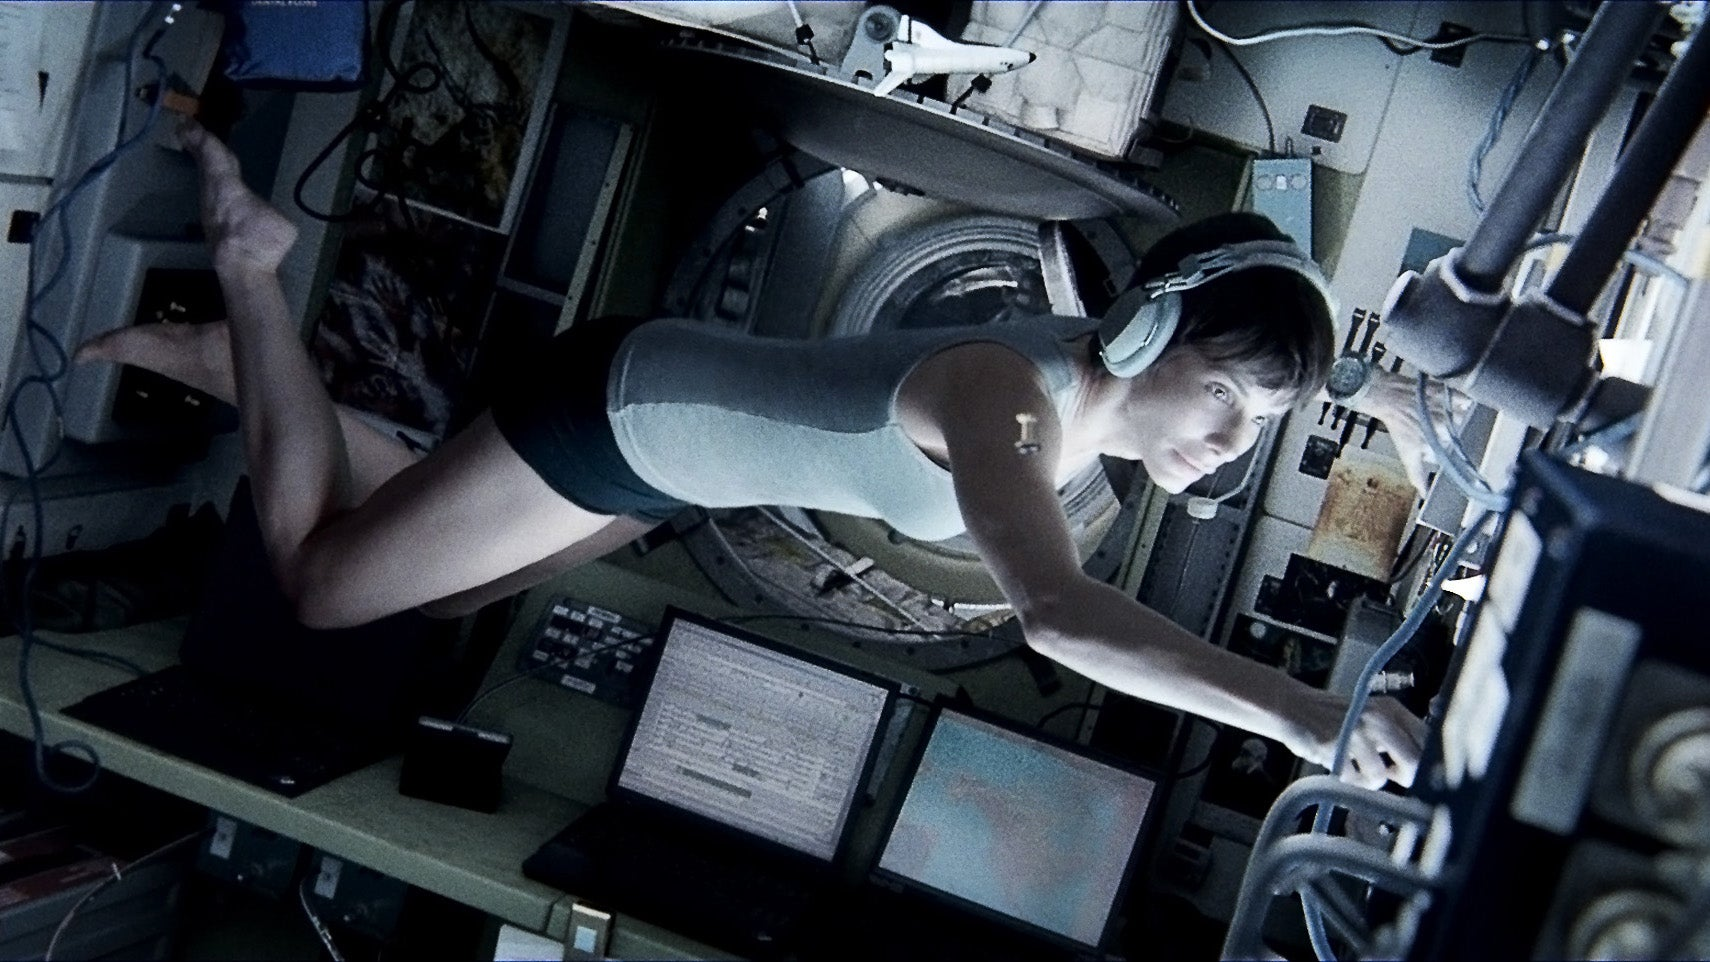 The Complete List Of Movies And TV Shows On Board The International Space Station